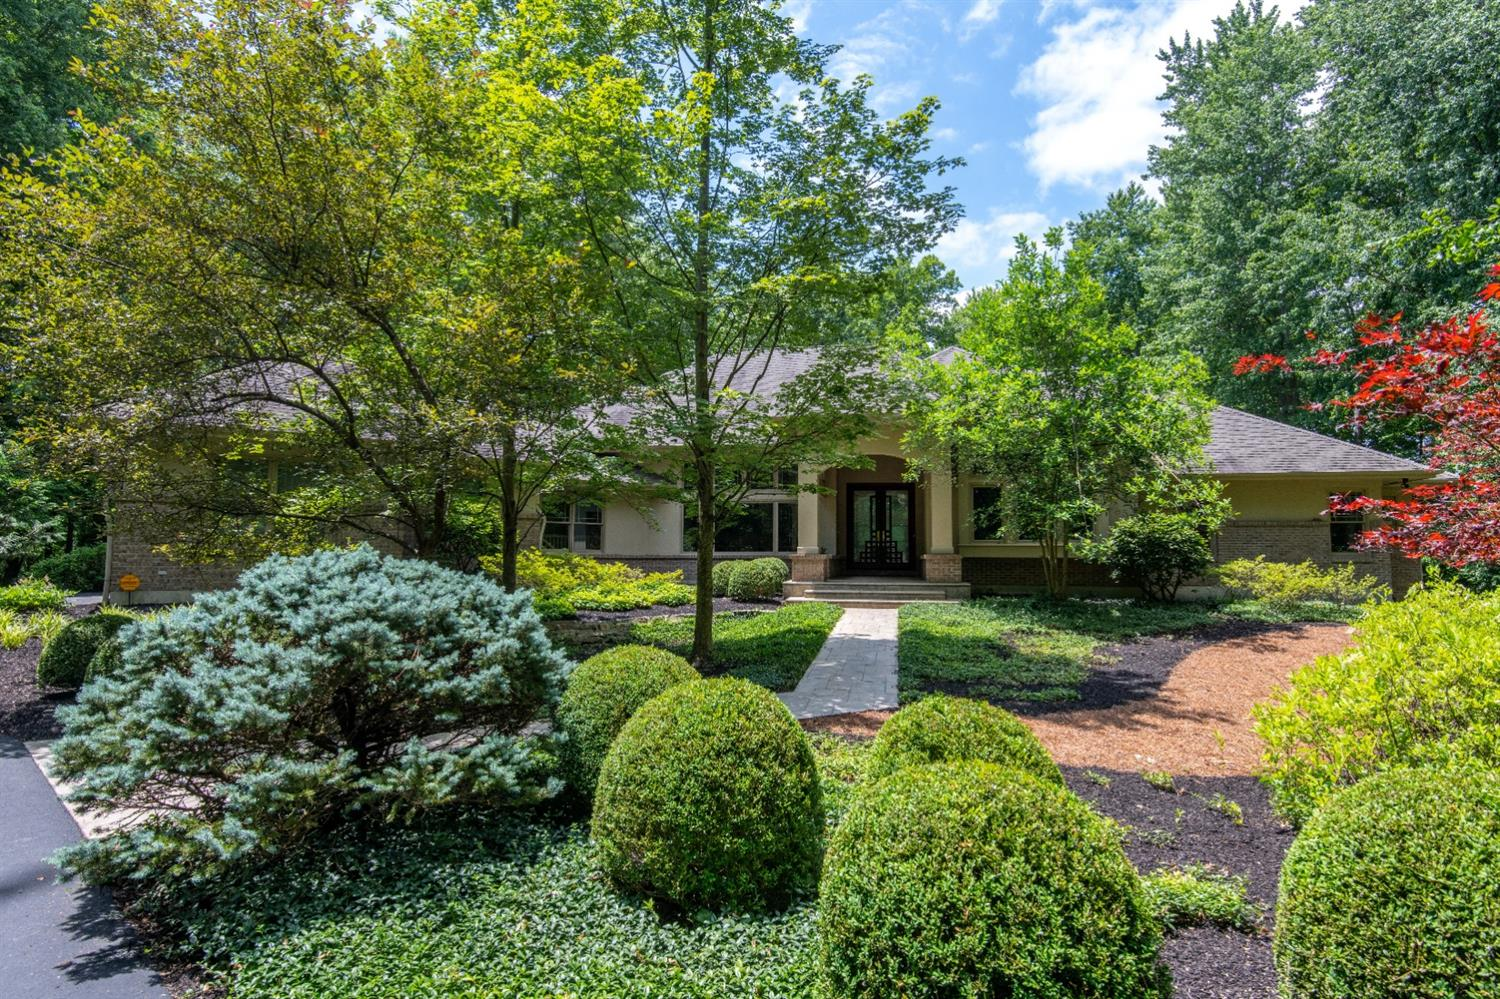 9040 Whisperinghill Dr Indian Hill, OH